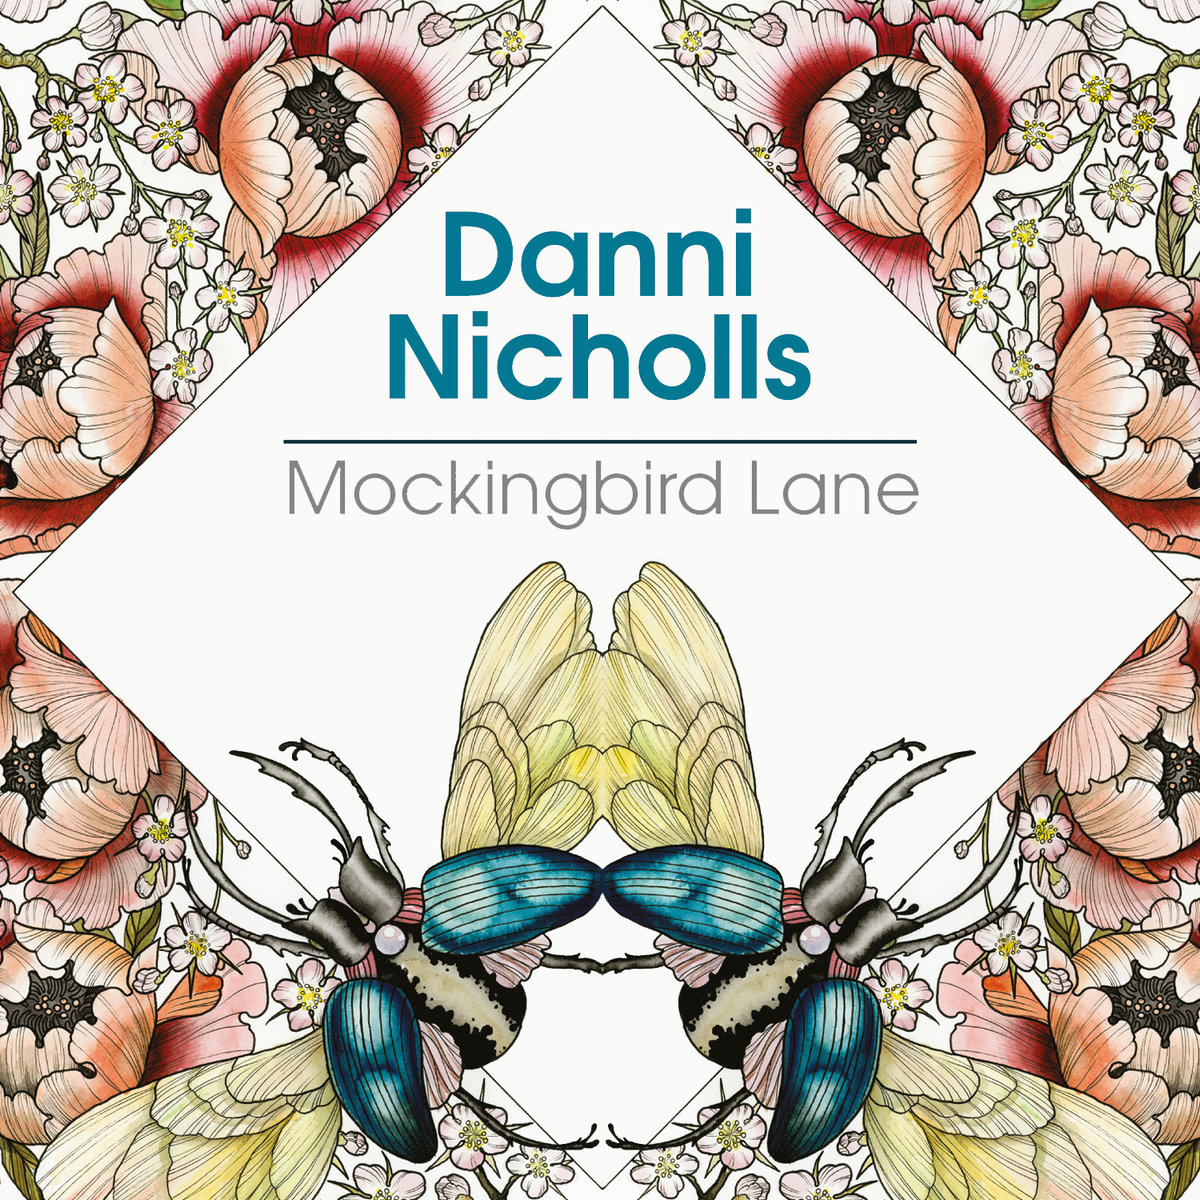 Danni Nicholls 'Mockingbird Lane' nominated for the 2017 AMA UK Awards